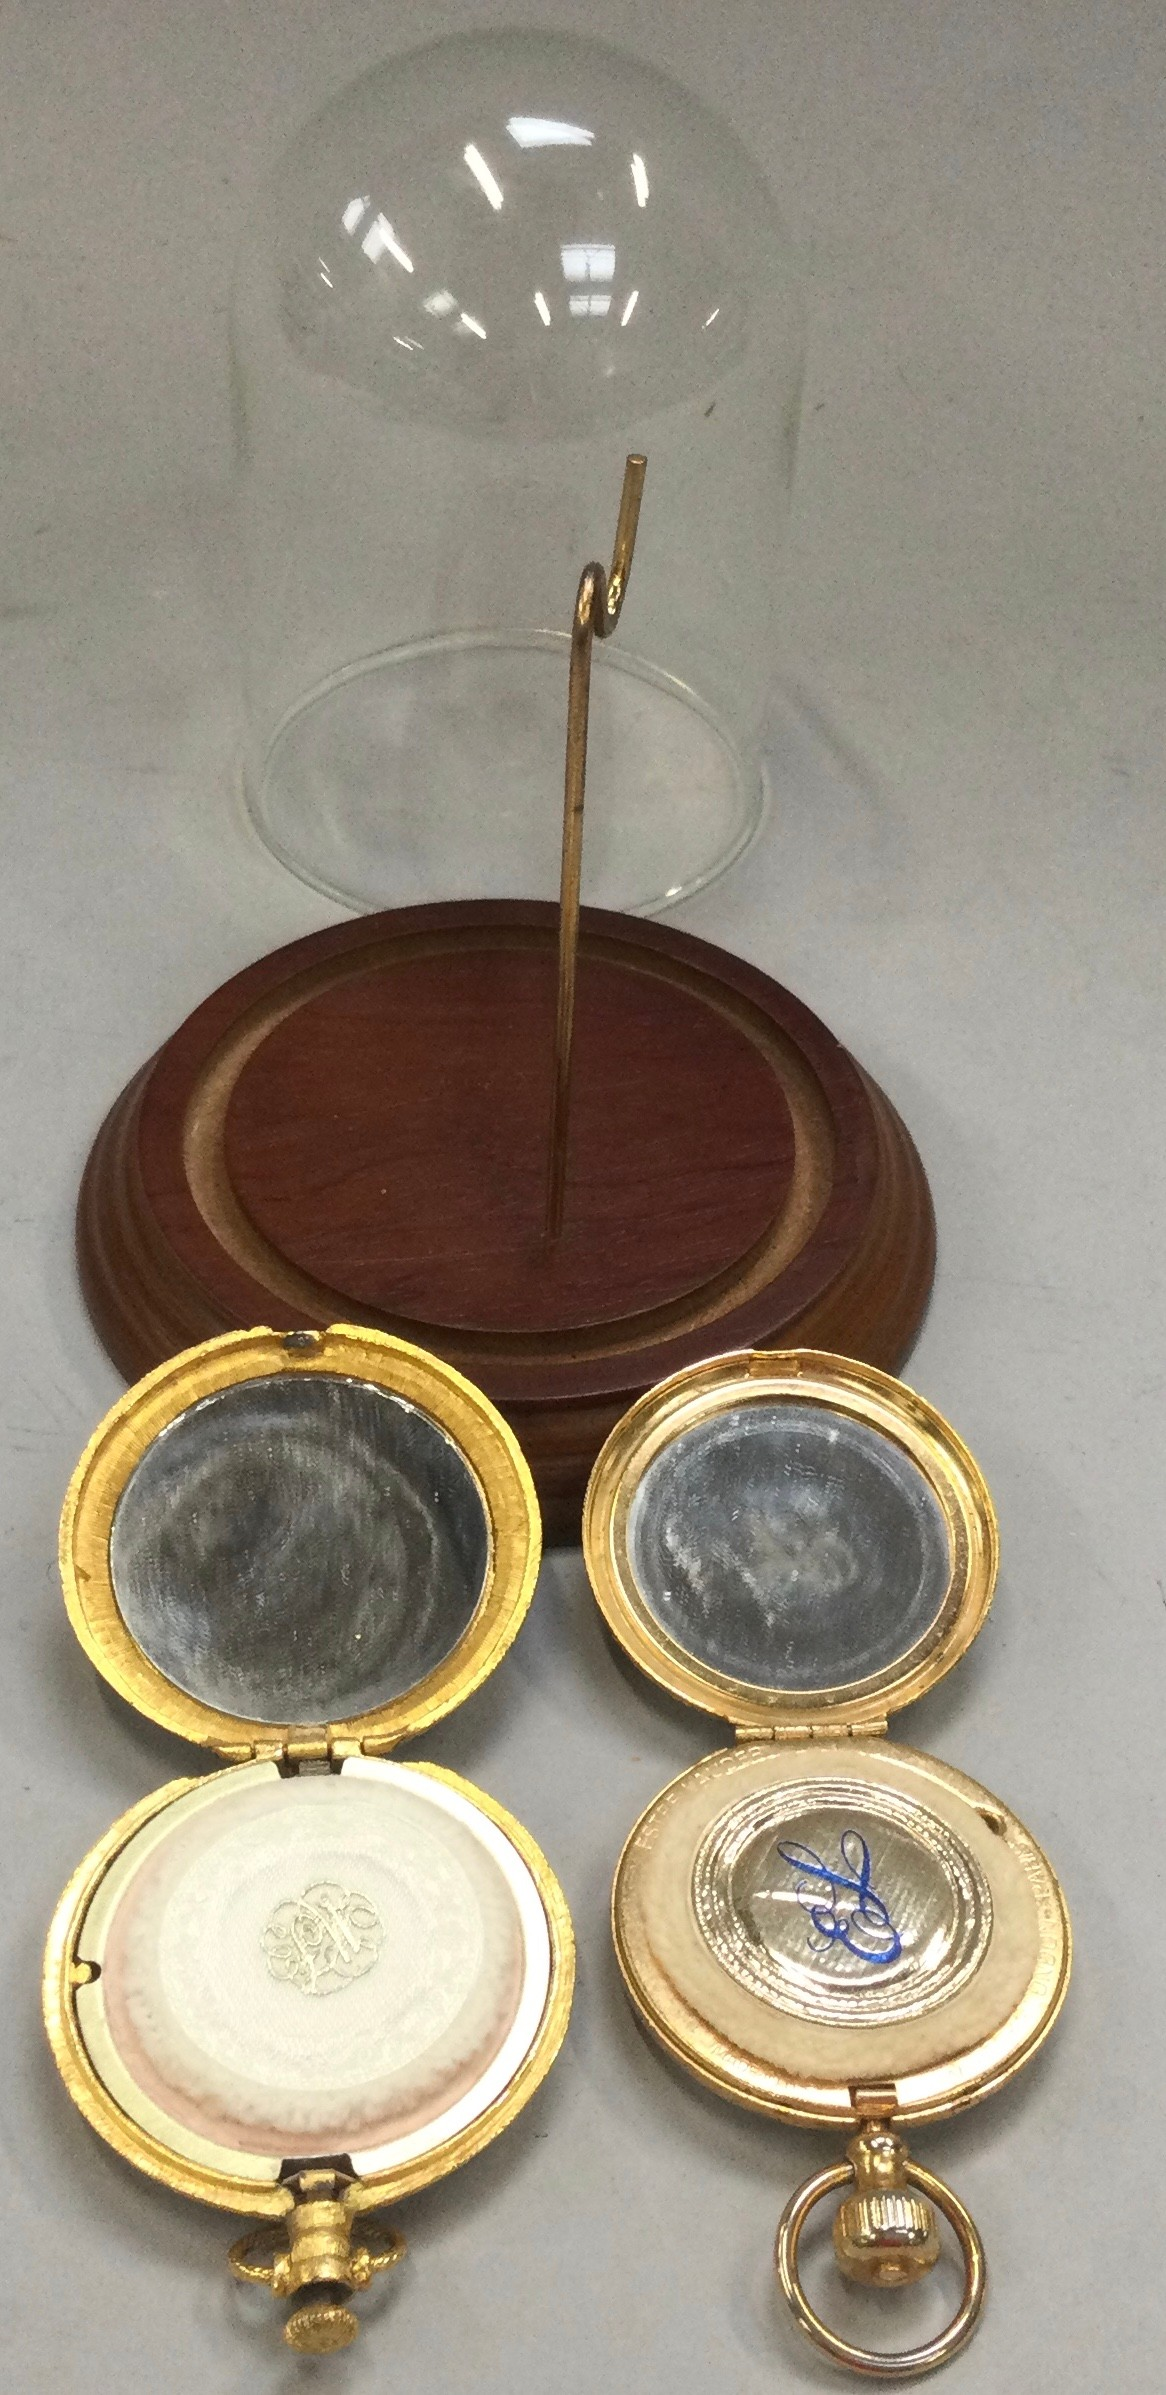 Two novelty ladies powder compacts in the form of pocket watches to include one with dome (2).